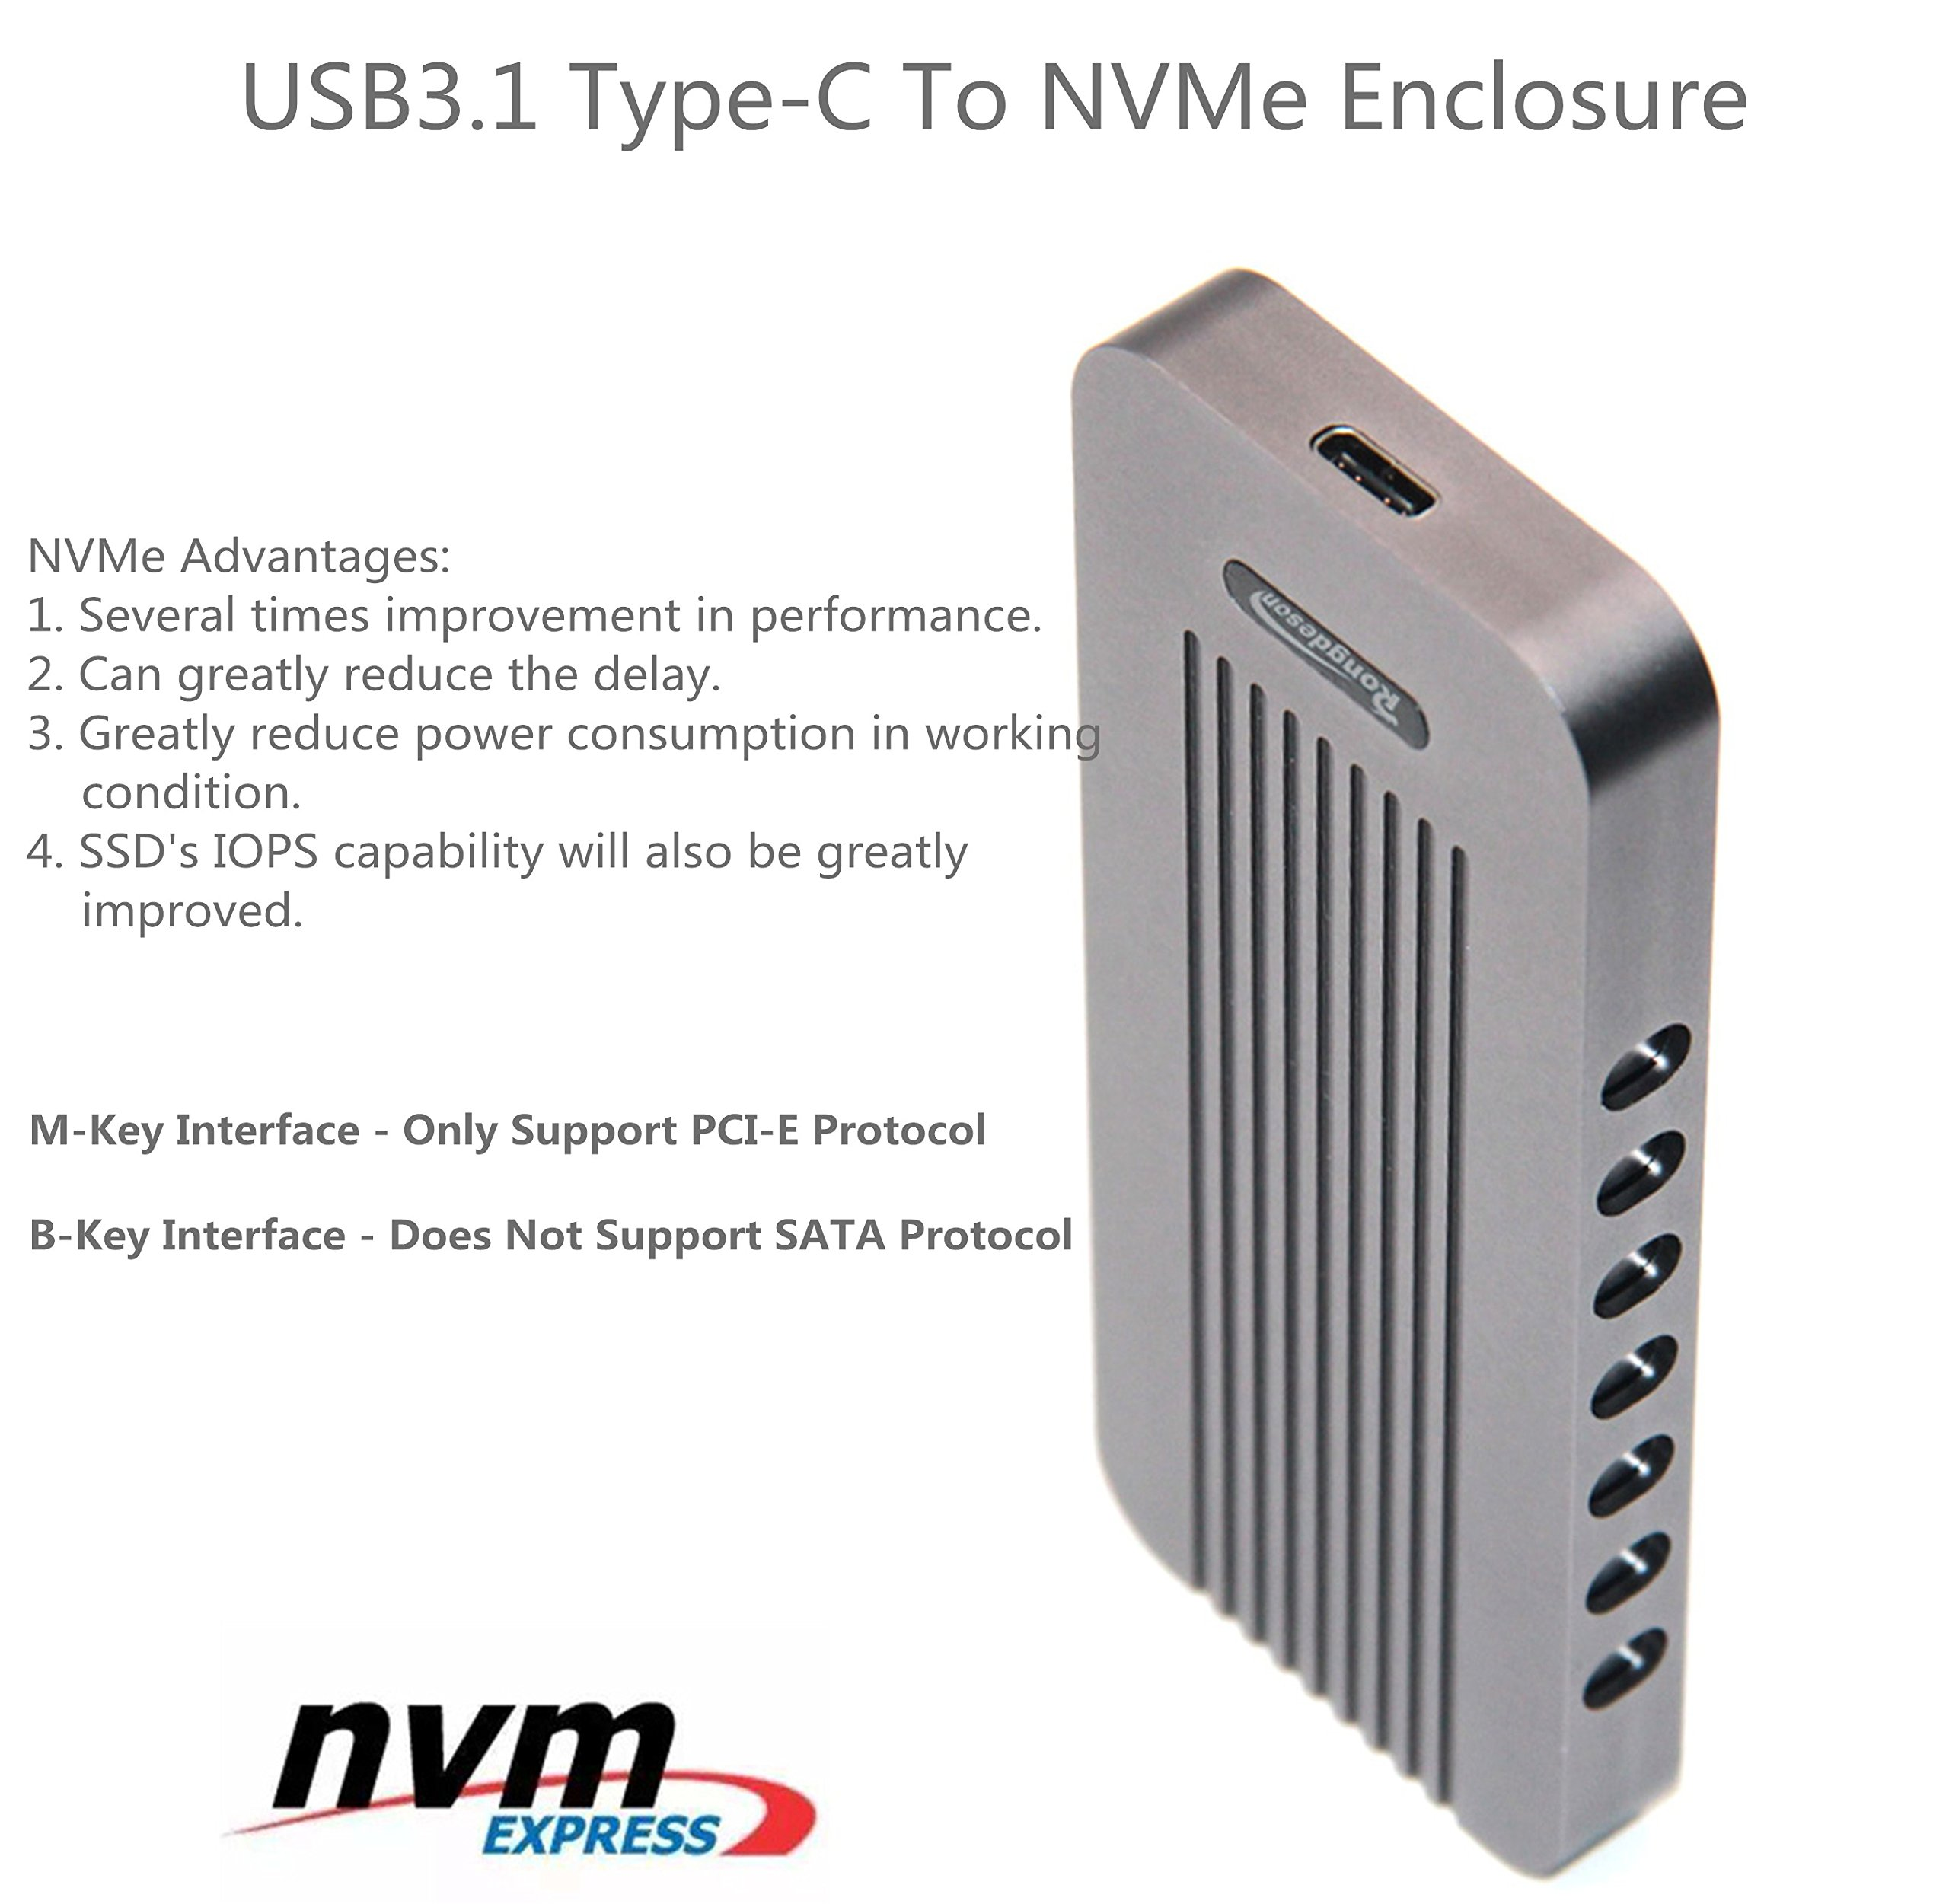 USB Type-C 10Gbps M.2 SSD Enclosure M Key, USB 3.1 To PCI-E NVMe Hard Disk Case Aluminum Design Support 2230 2242 2260 2280 Support Samsung SM951/SM961 (902 CToC, Charcoal Gray) by WBTUO (Image #8)